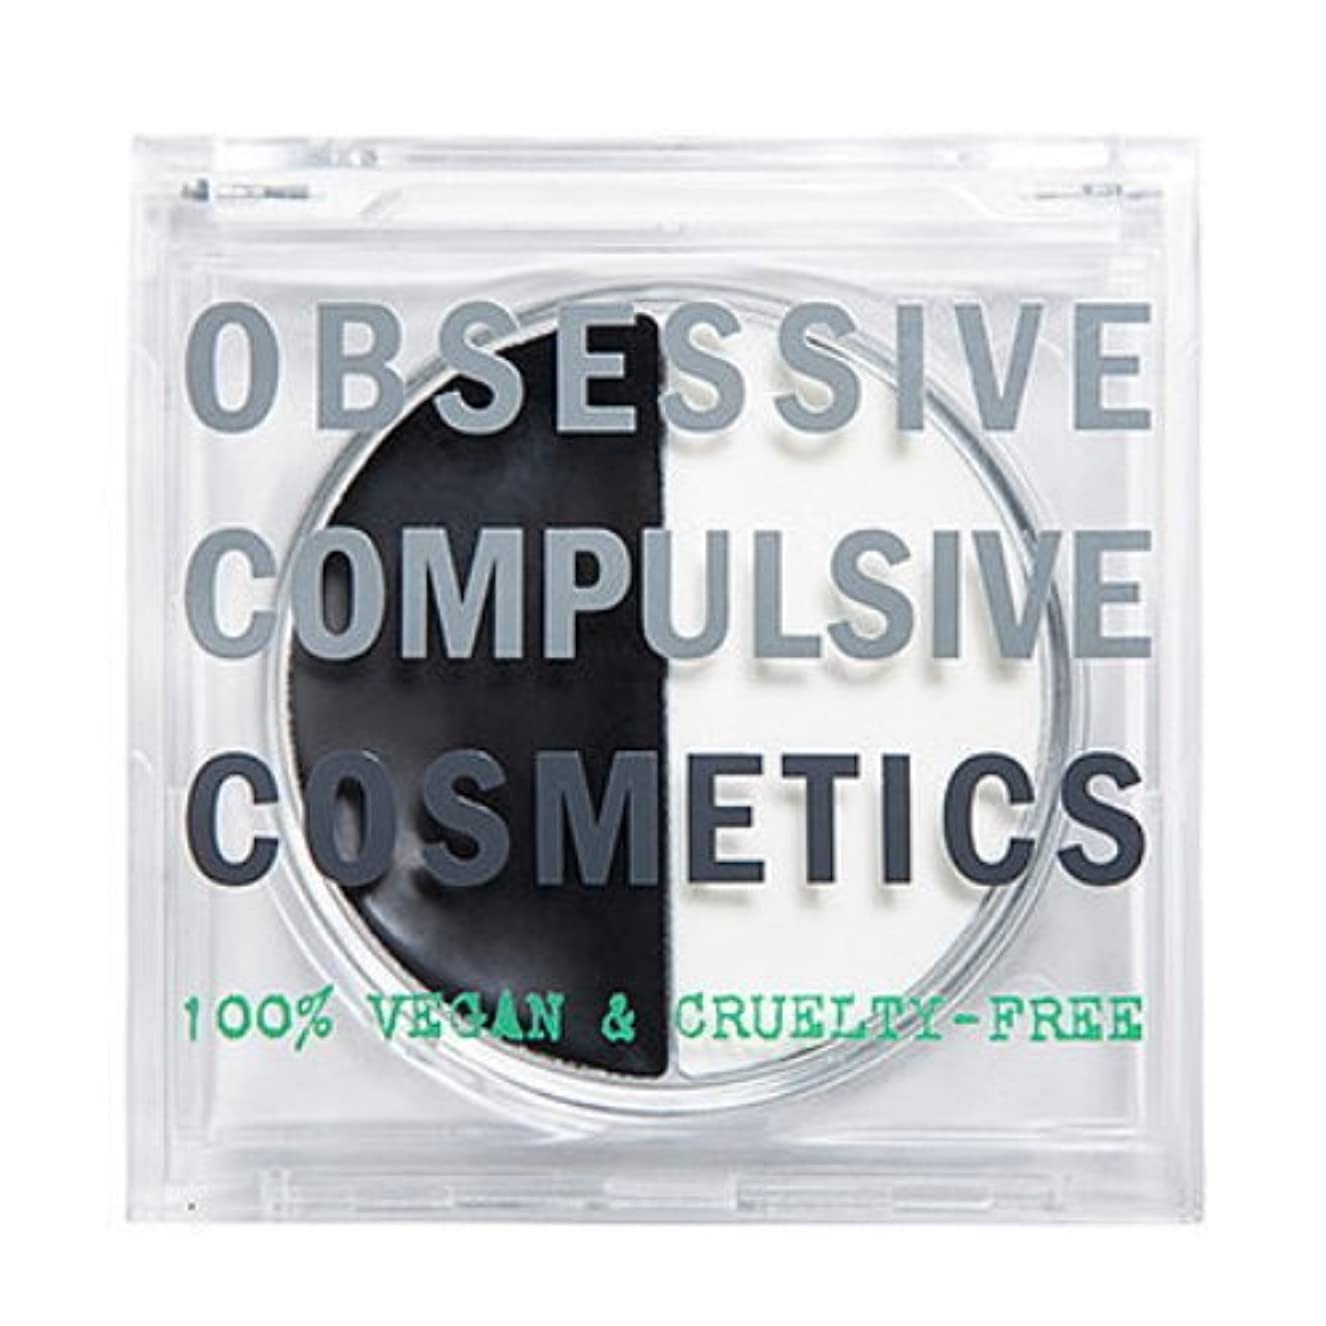 寛大なシンポジウム音節(3 Pack) OBSESSIVE COMPULSIVE COSMETICS Tarred & Feathered Lip Balm Duo - Black & White (並行輸入品)